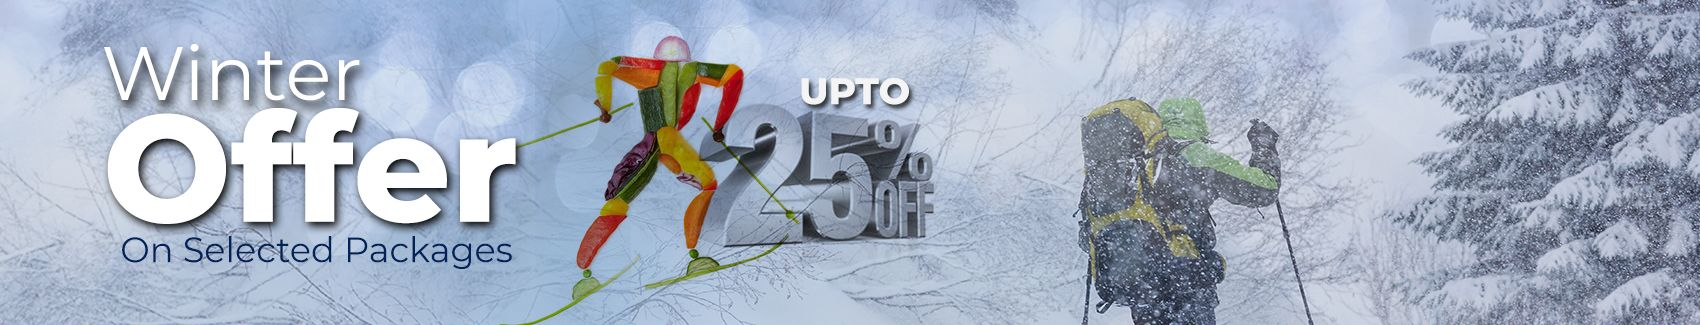 https://www.mydreamgarden.in/mdg-winter-offer-upto25-discount-on-garden-packages.html